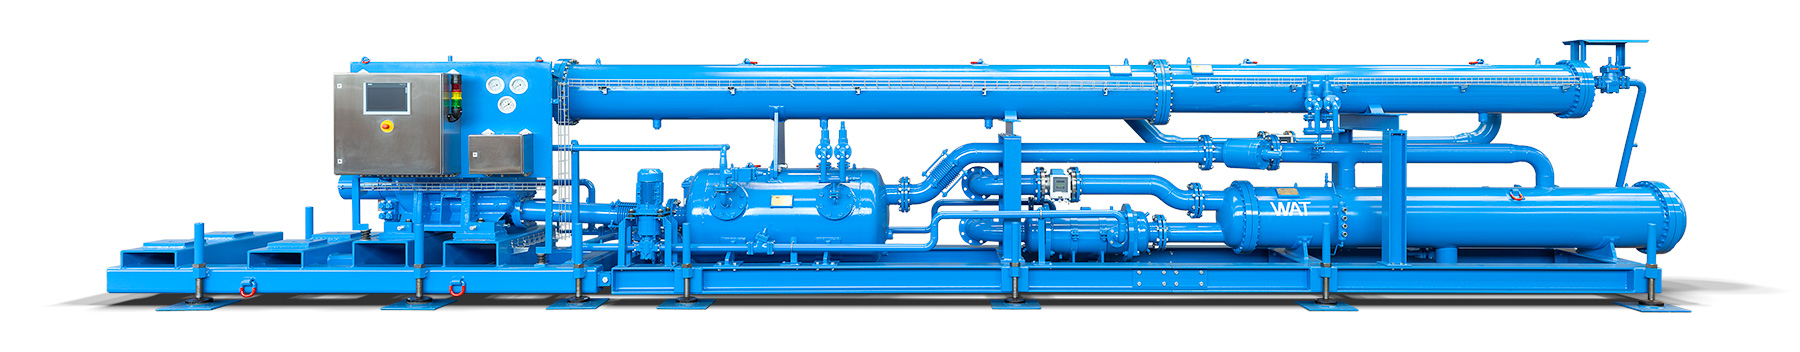 Cold-Water machine chiller KM1000 for cooling in mining and tunnelling